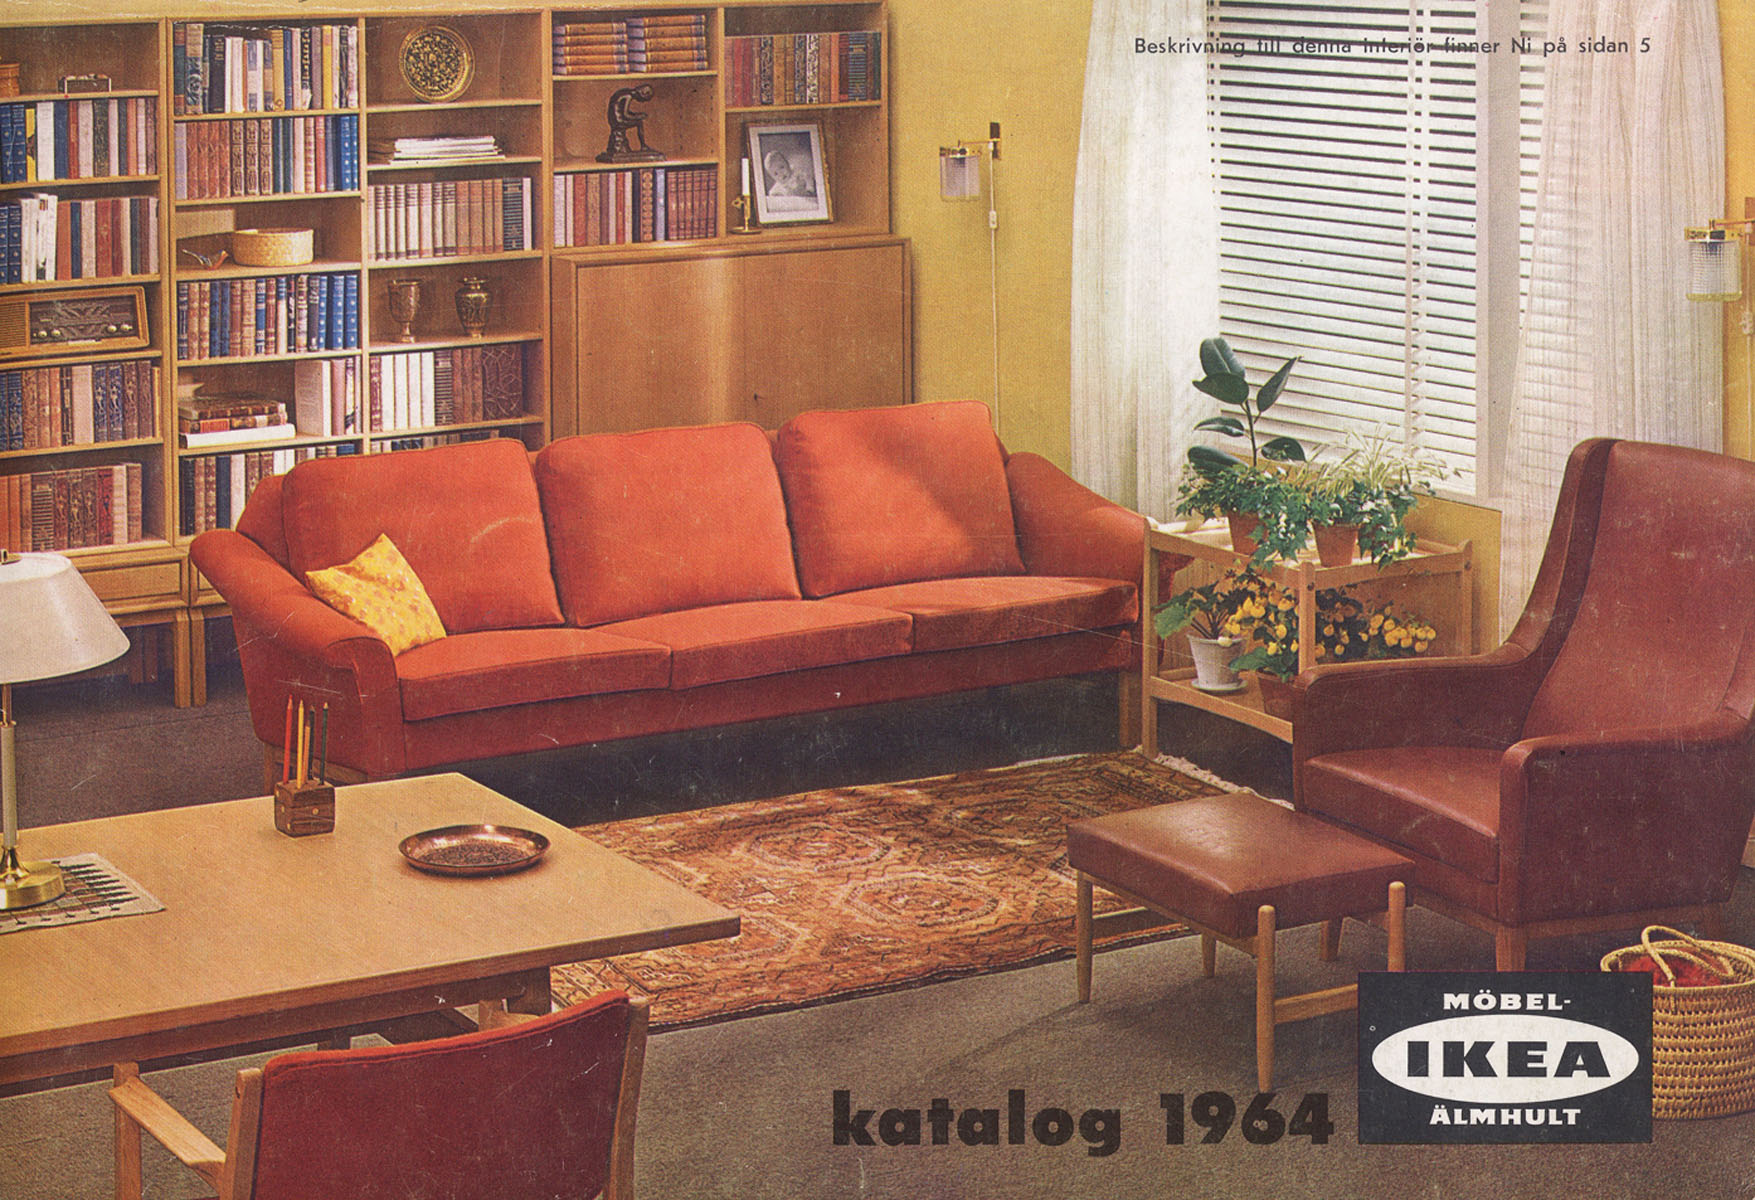 Ikea catalog covers from 1951 2015 Home style furniture catalogue